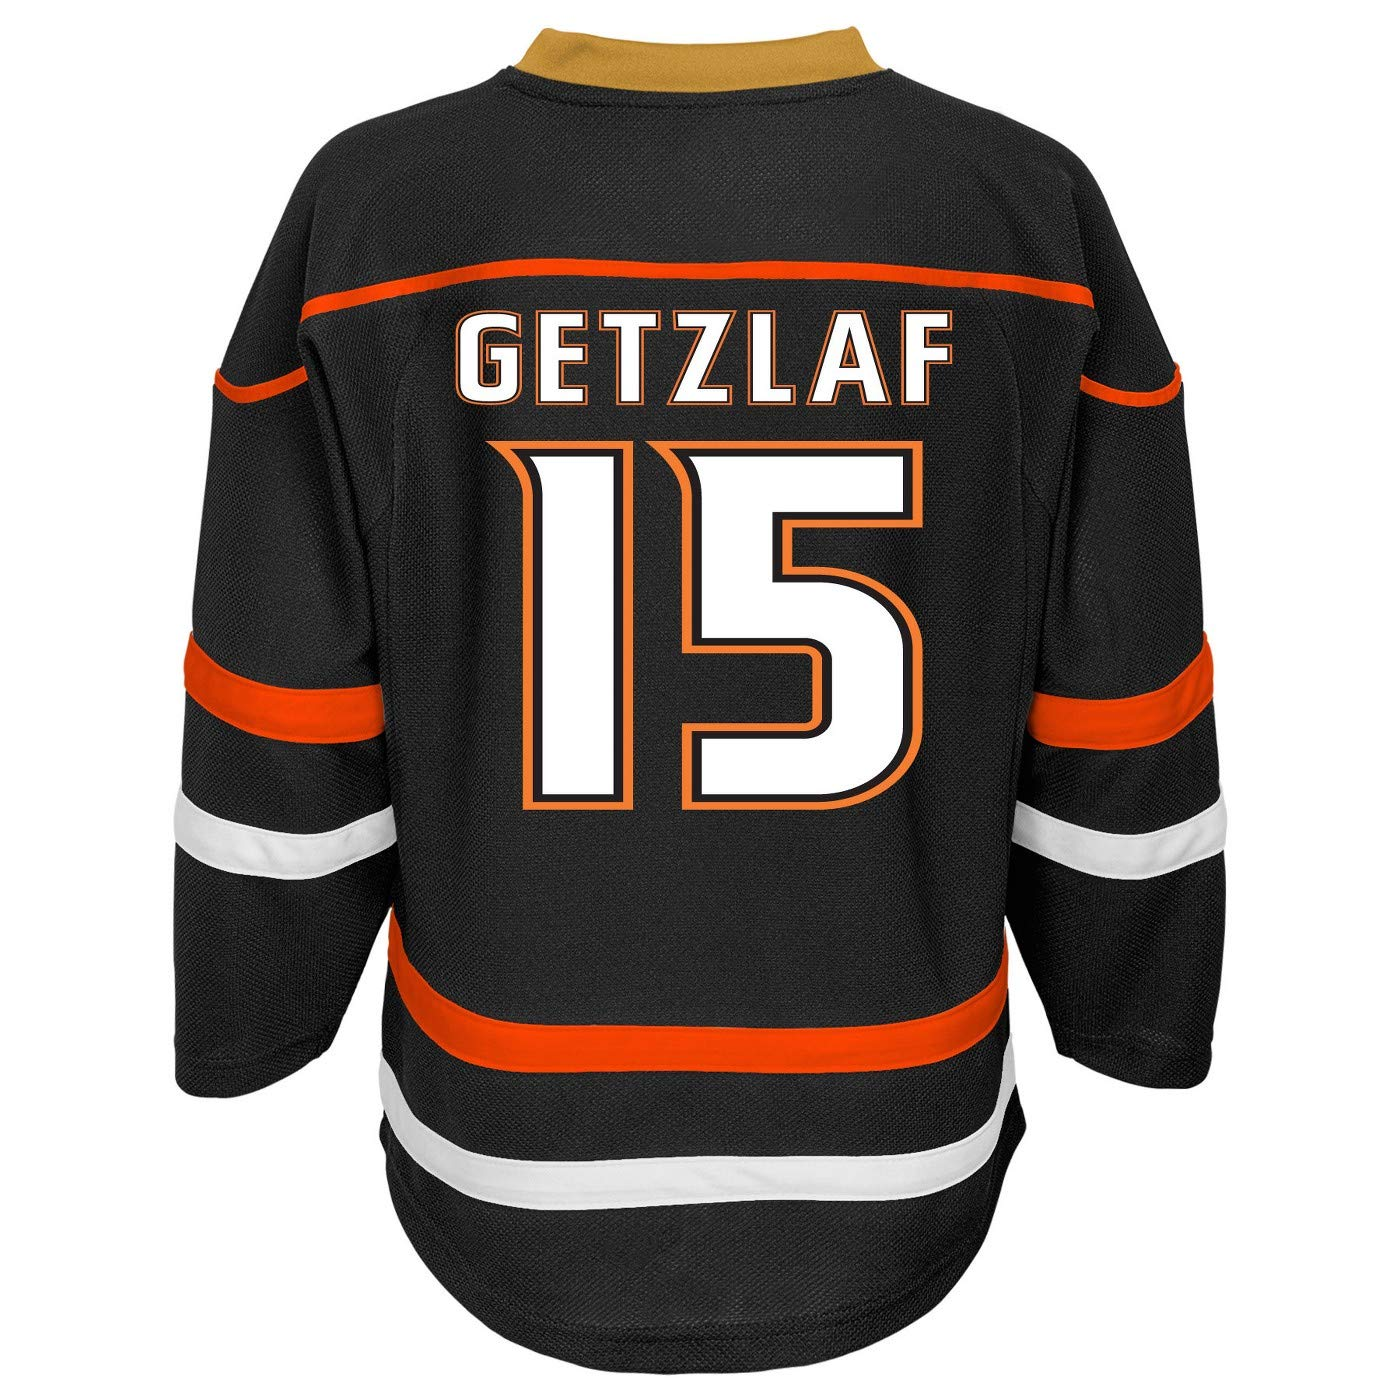 low priced a8fcf 0fa0c Amazon.com: Outerstuff Ryan Getzlaf Anaheim Ducks Youth ...